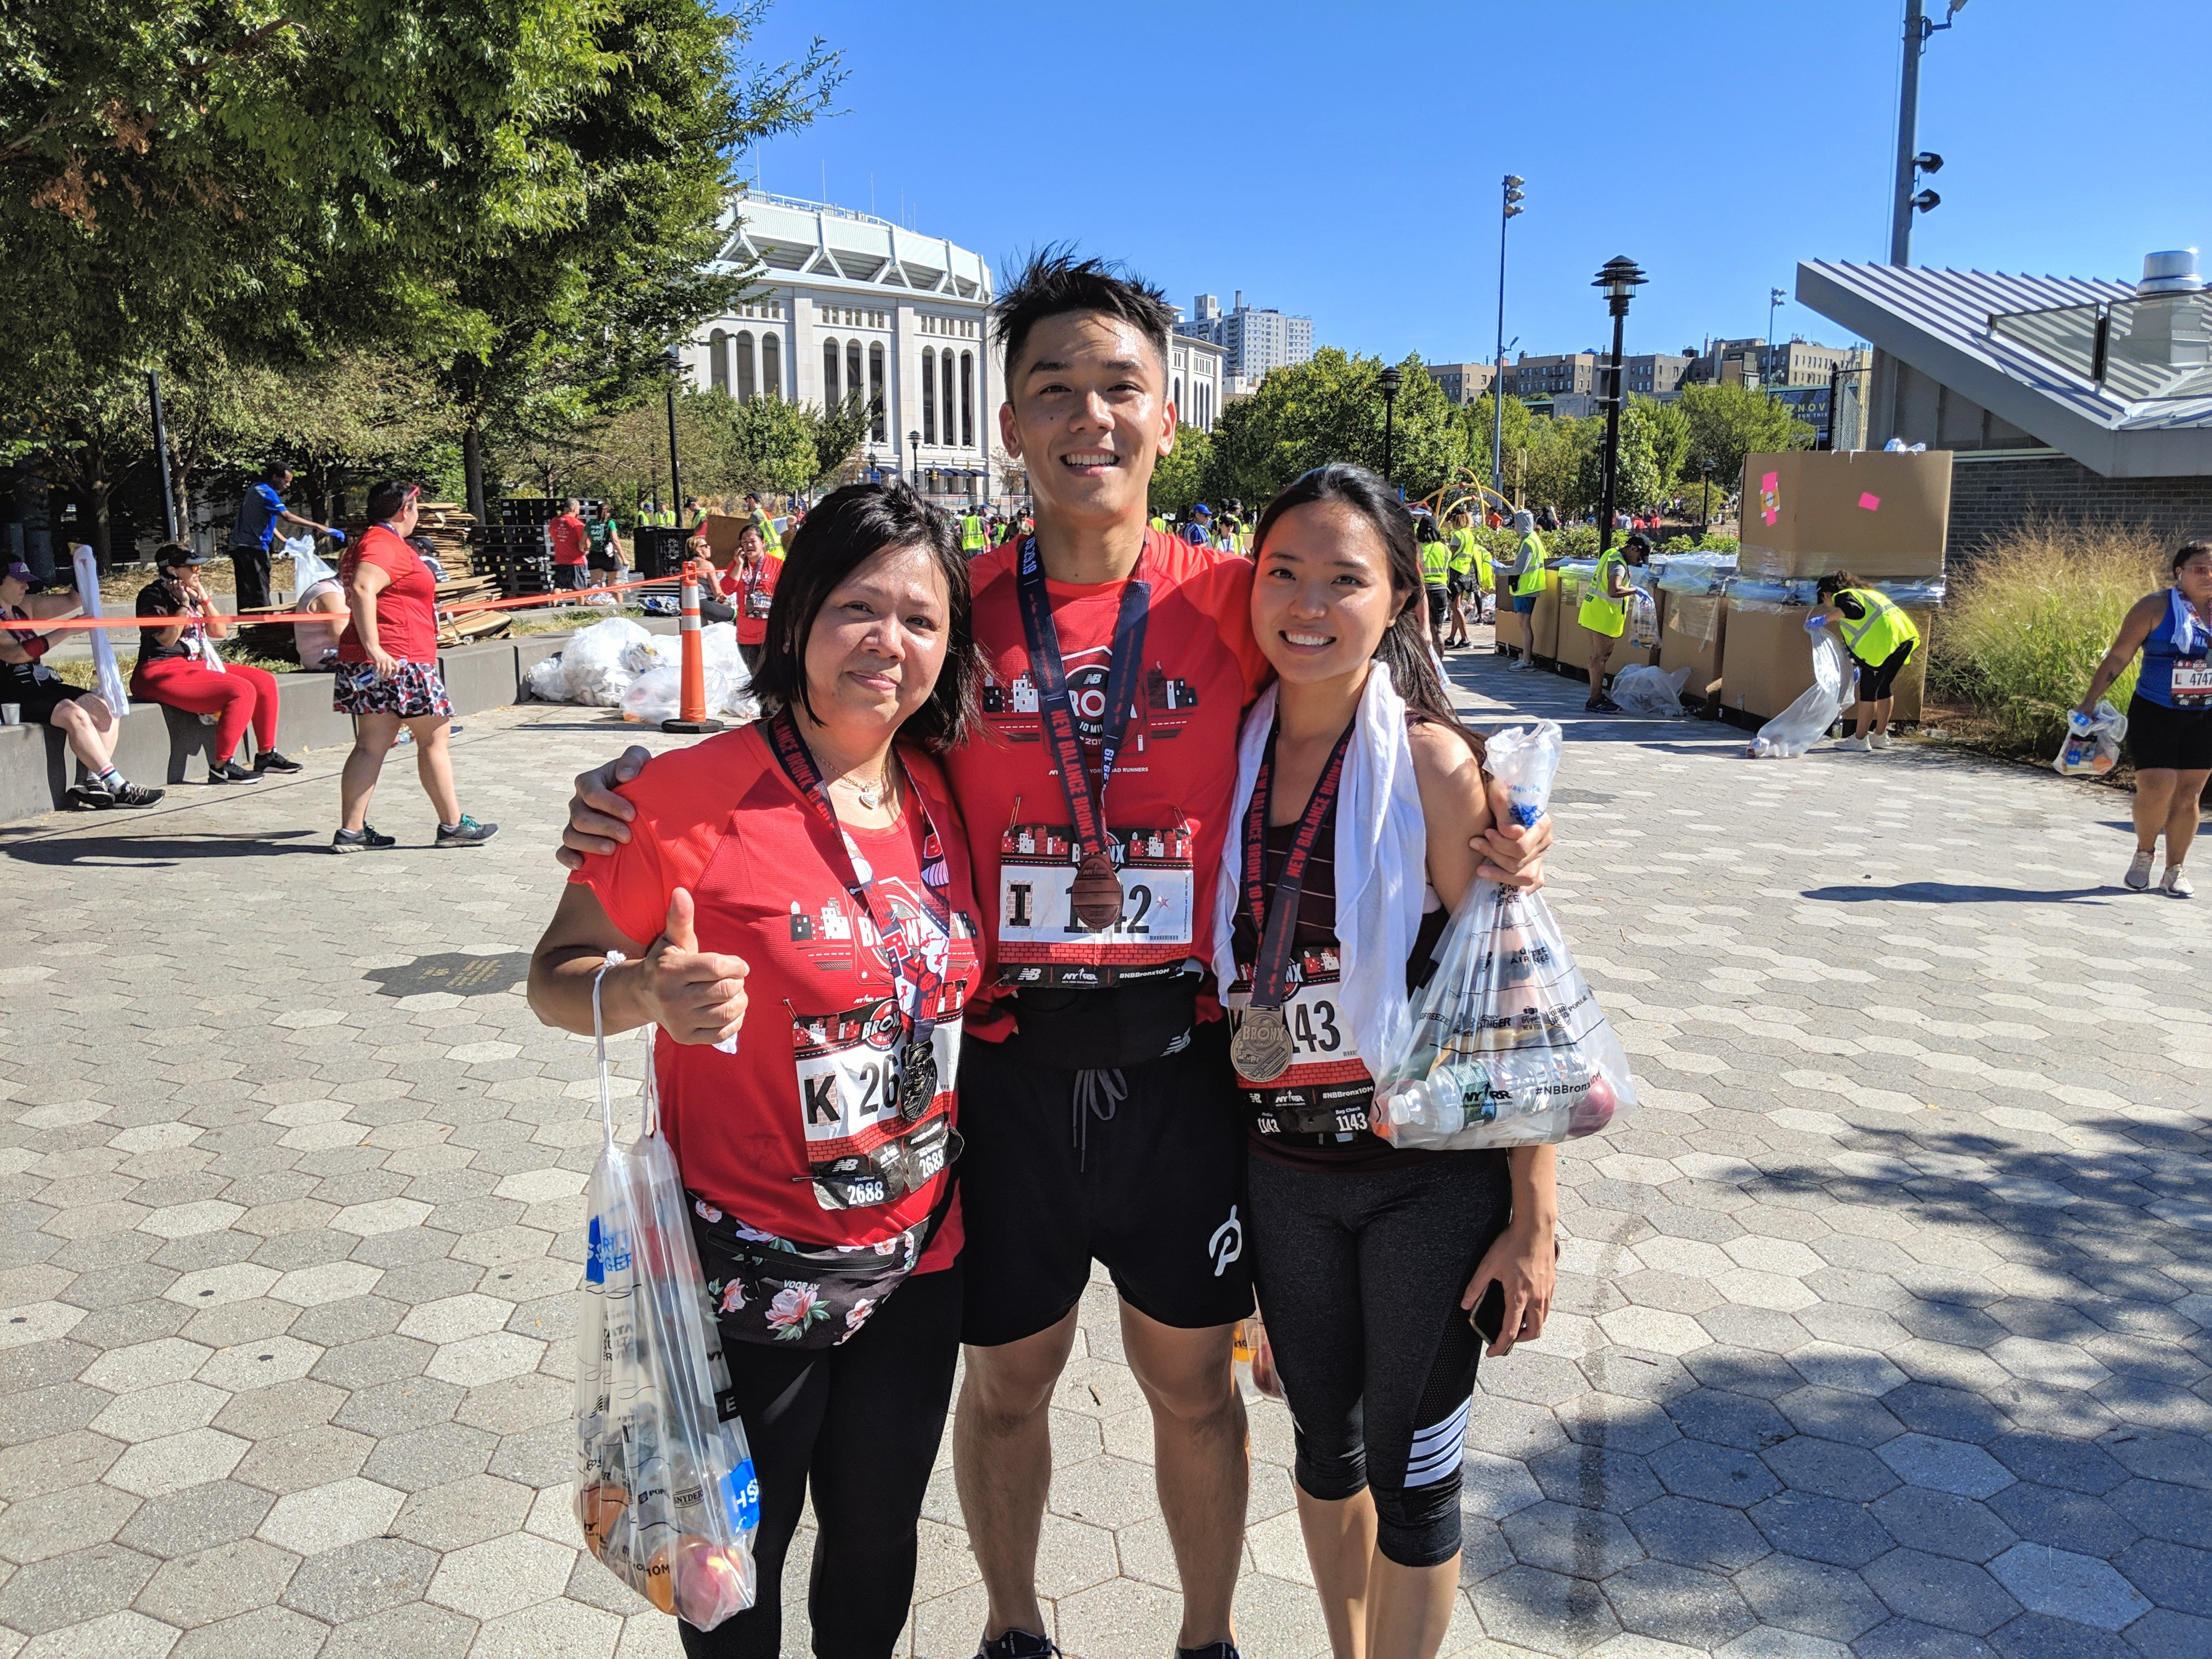 Finished the Bronx 10 Mile with my girlfriend and mom